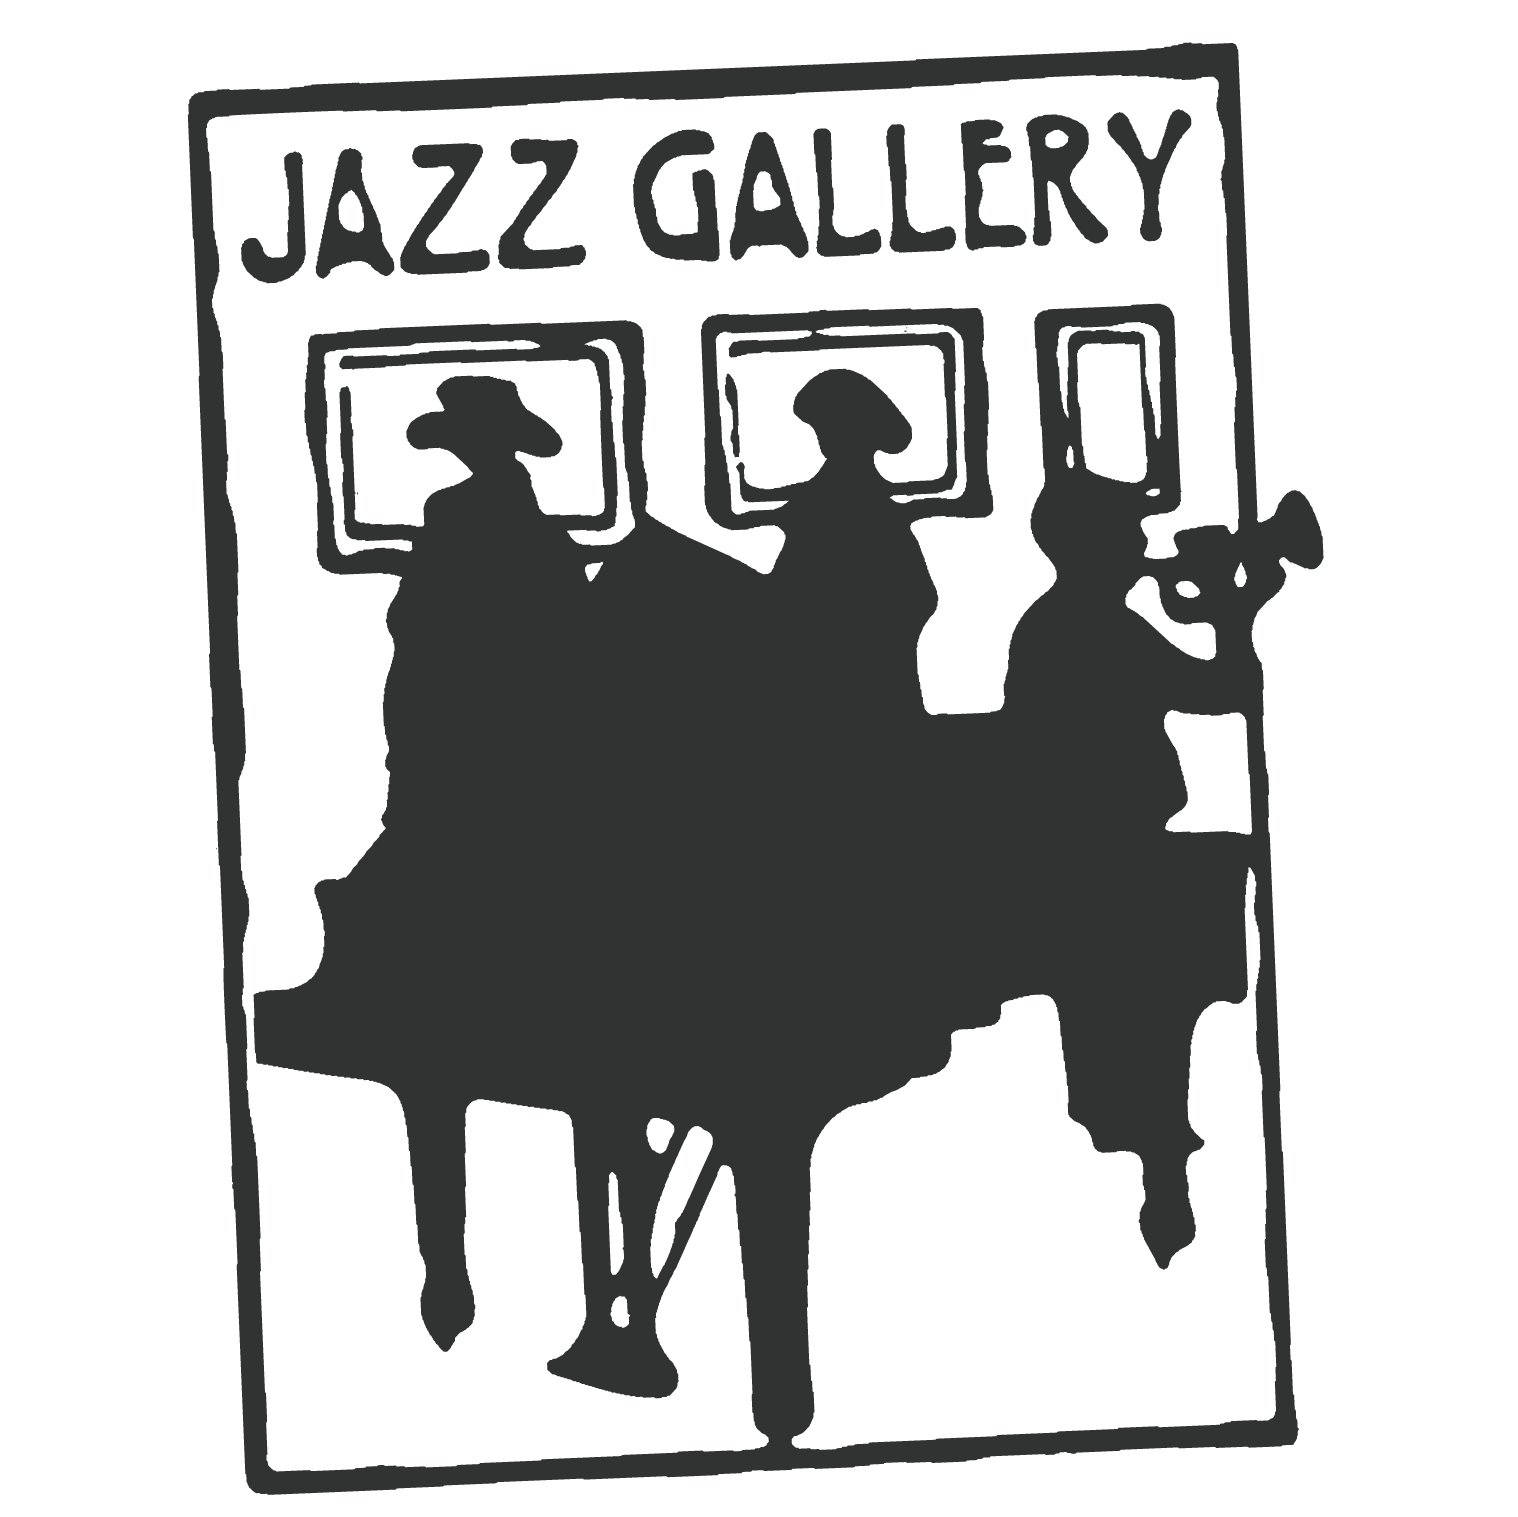 Click to visit The Jazz Gallery website